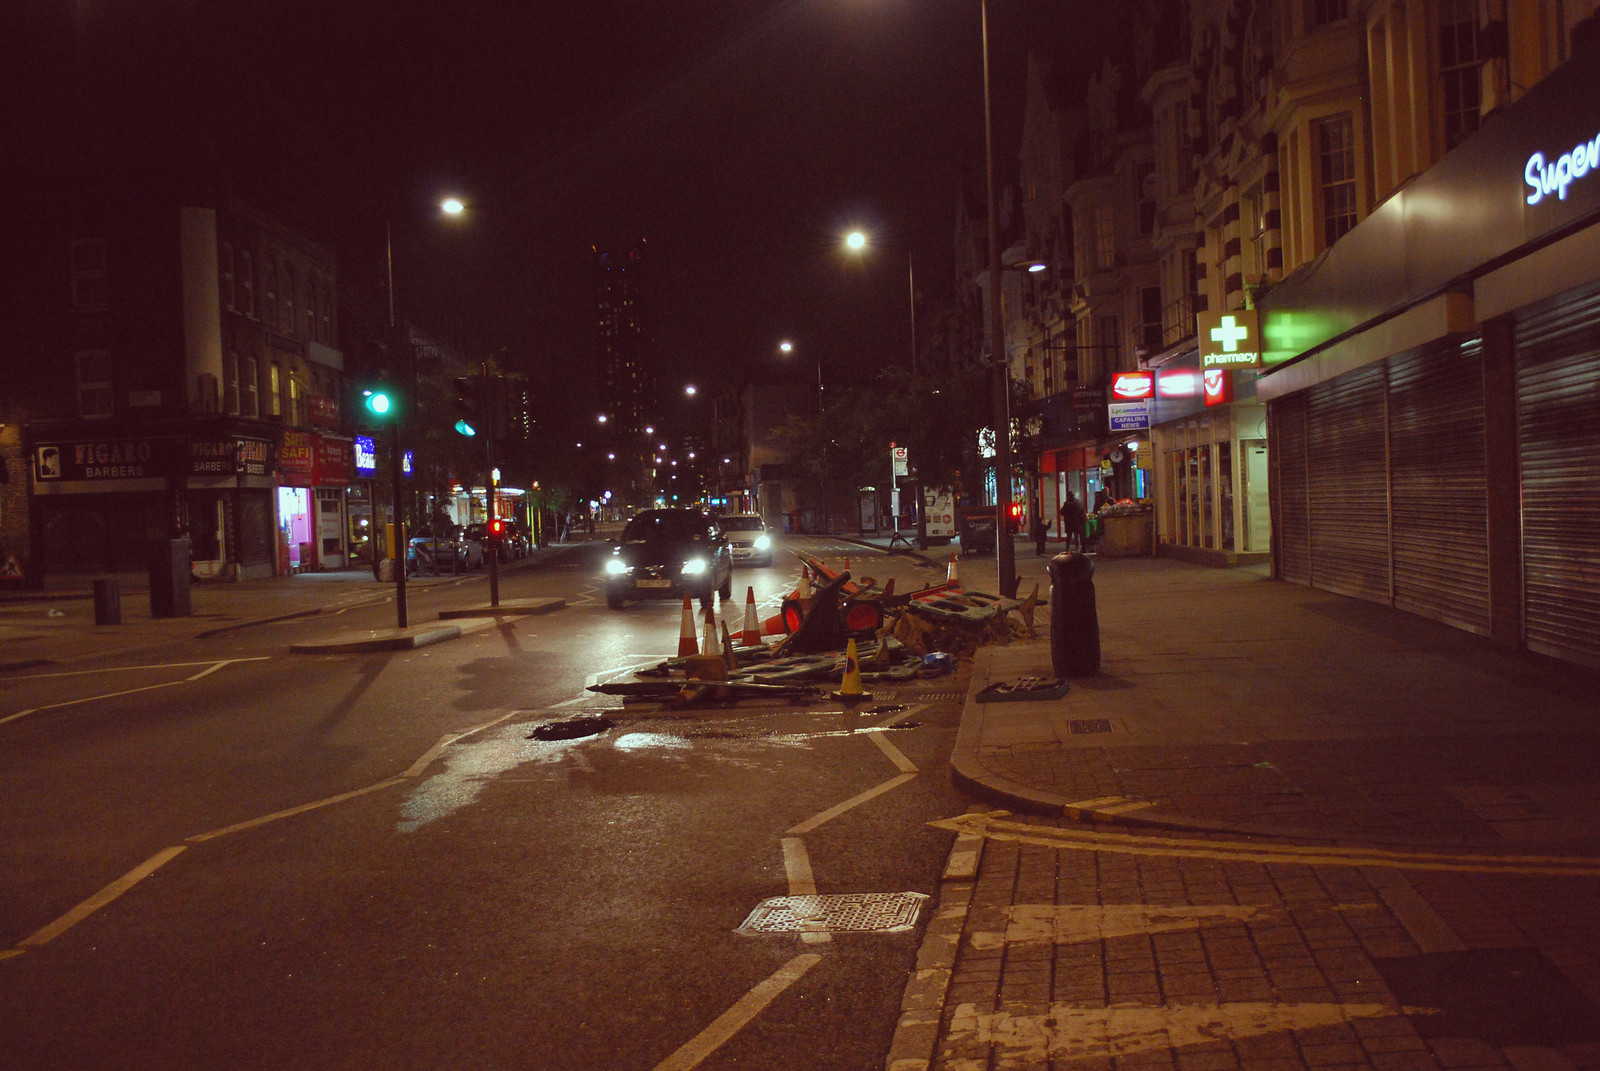 Night time in South London